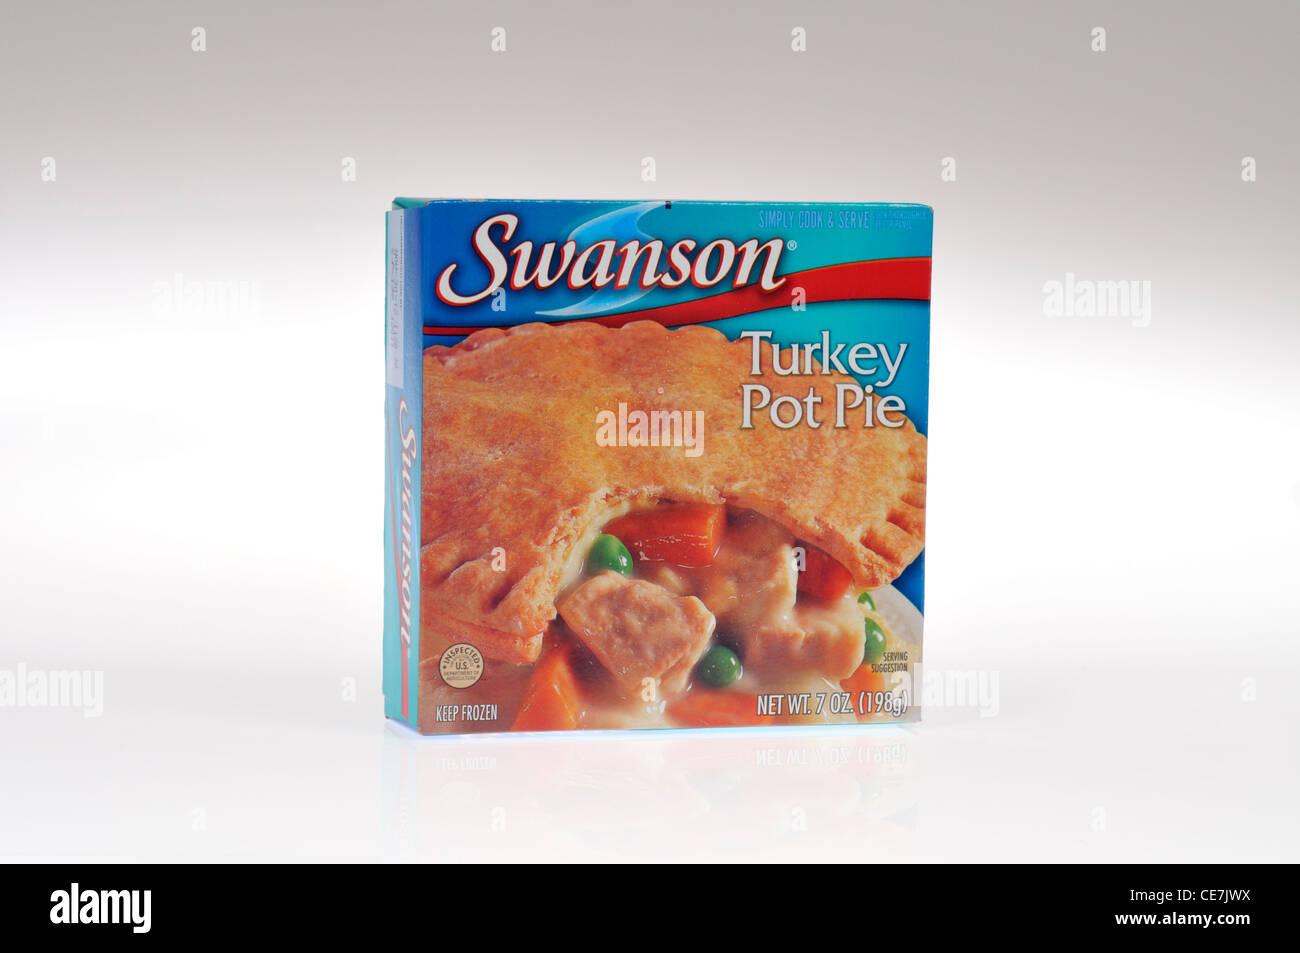 Swanson frozen turkey pot pie tv dinner in packaging on white background cutout. USA - Stock Image